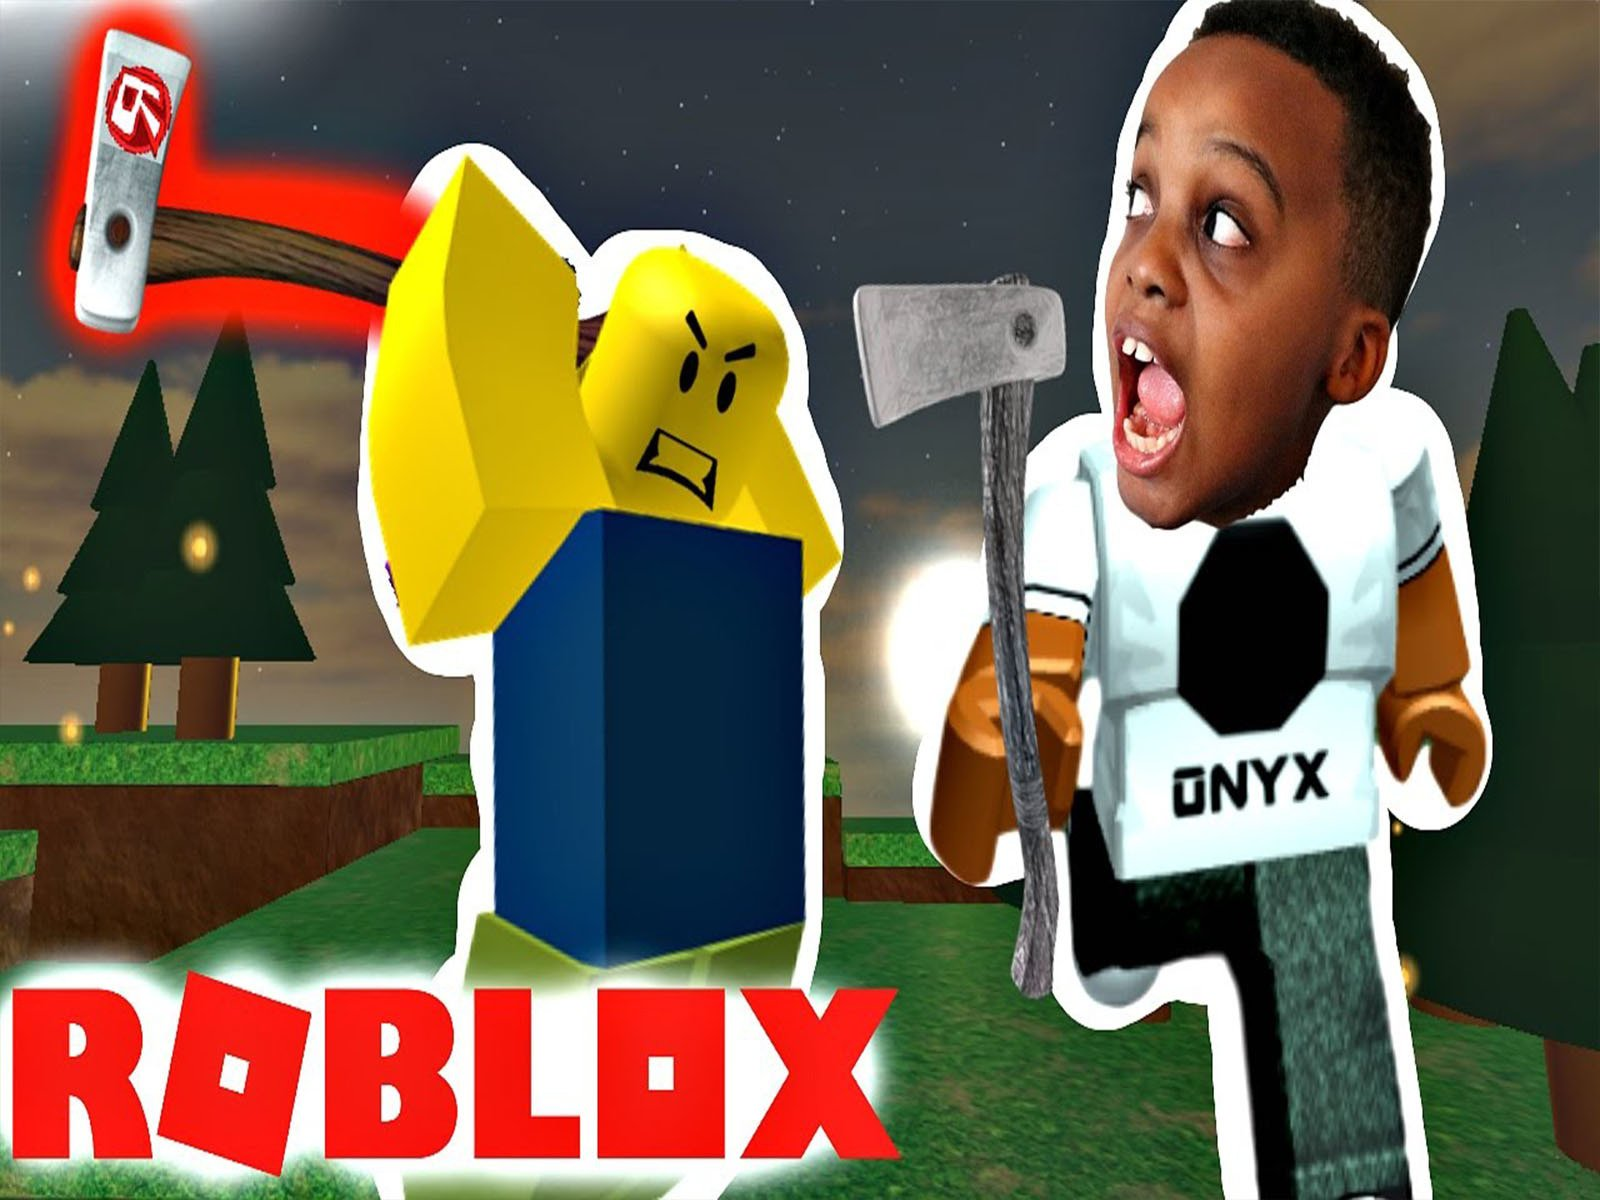 What Onyx Kids Roblox Name Watch Clip Playonyx Prime Video